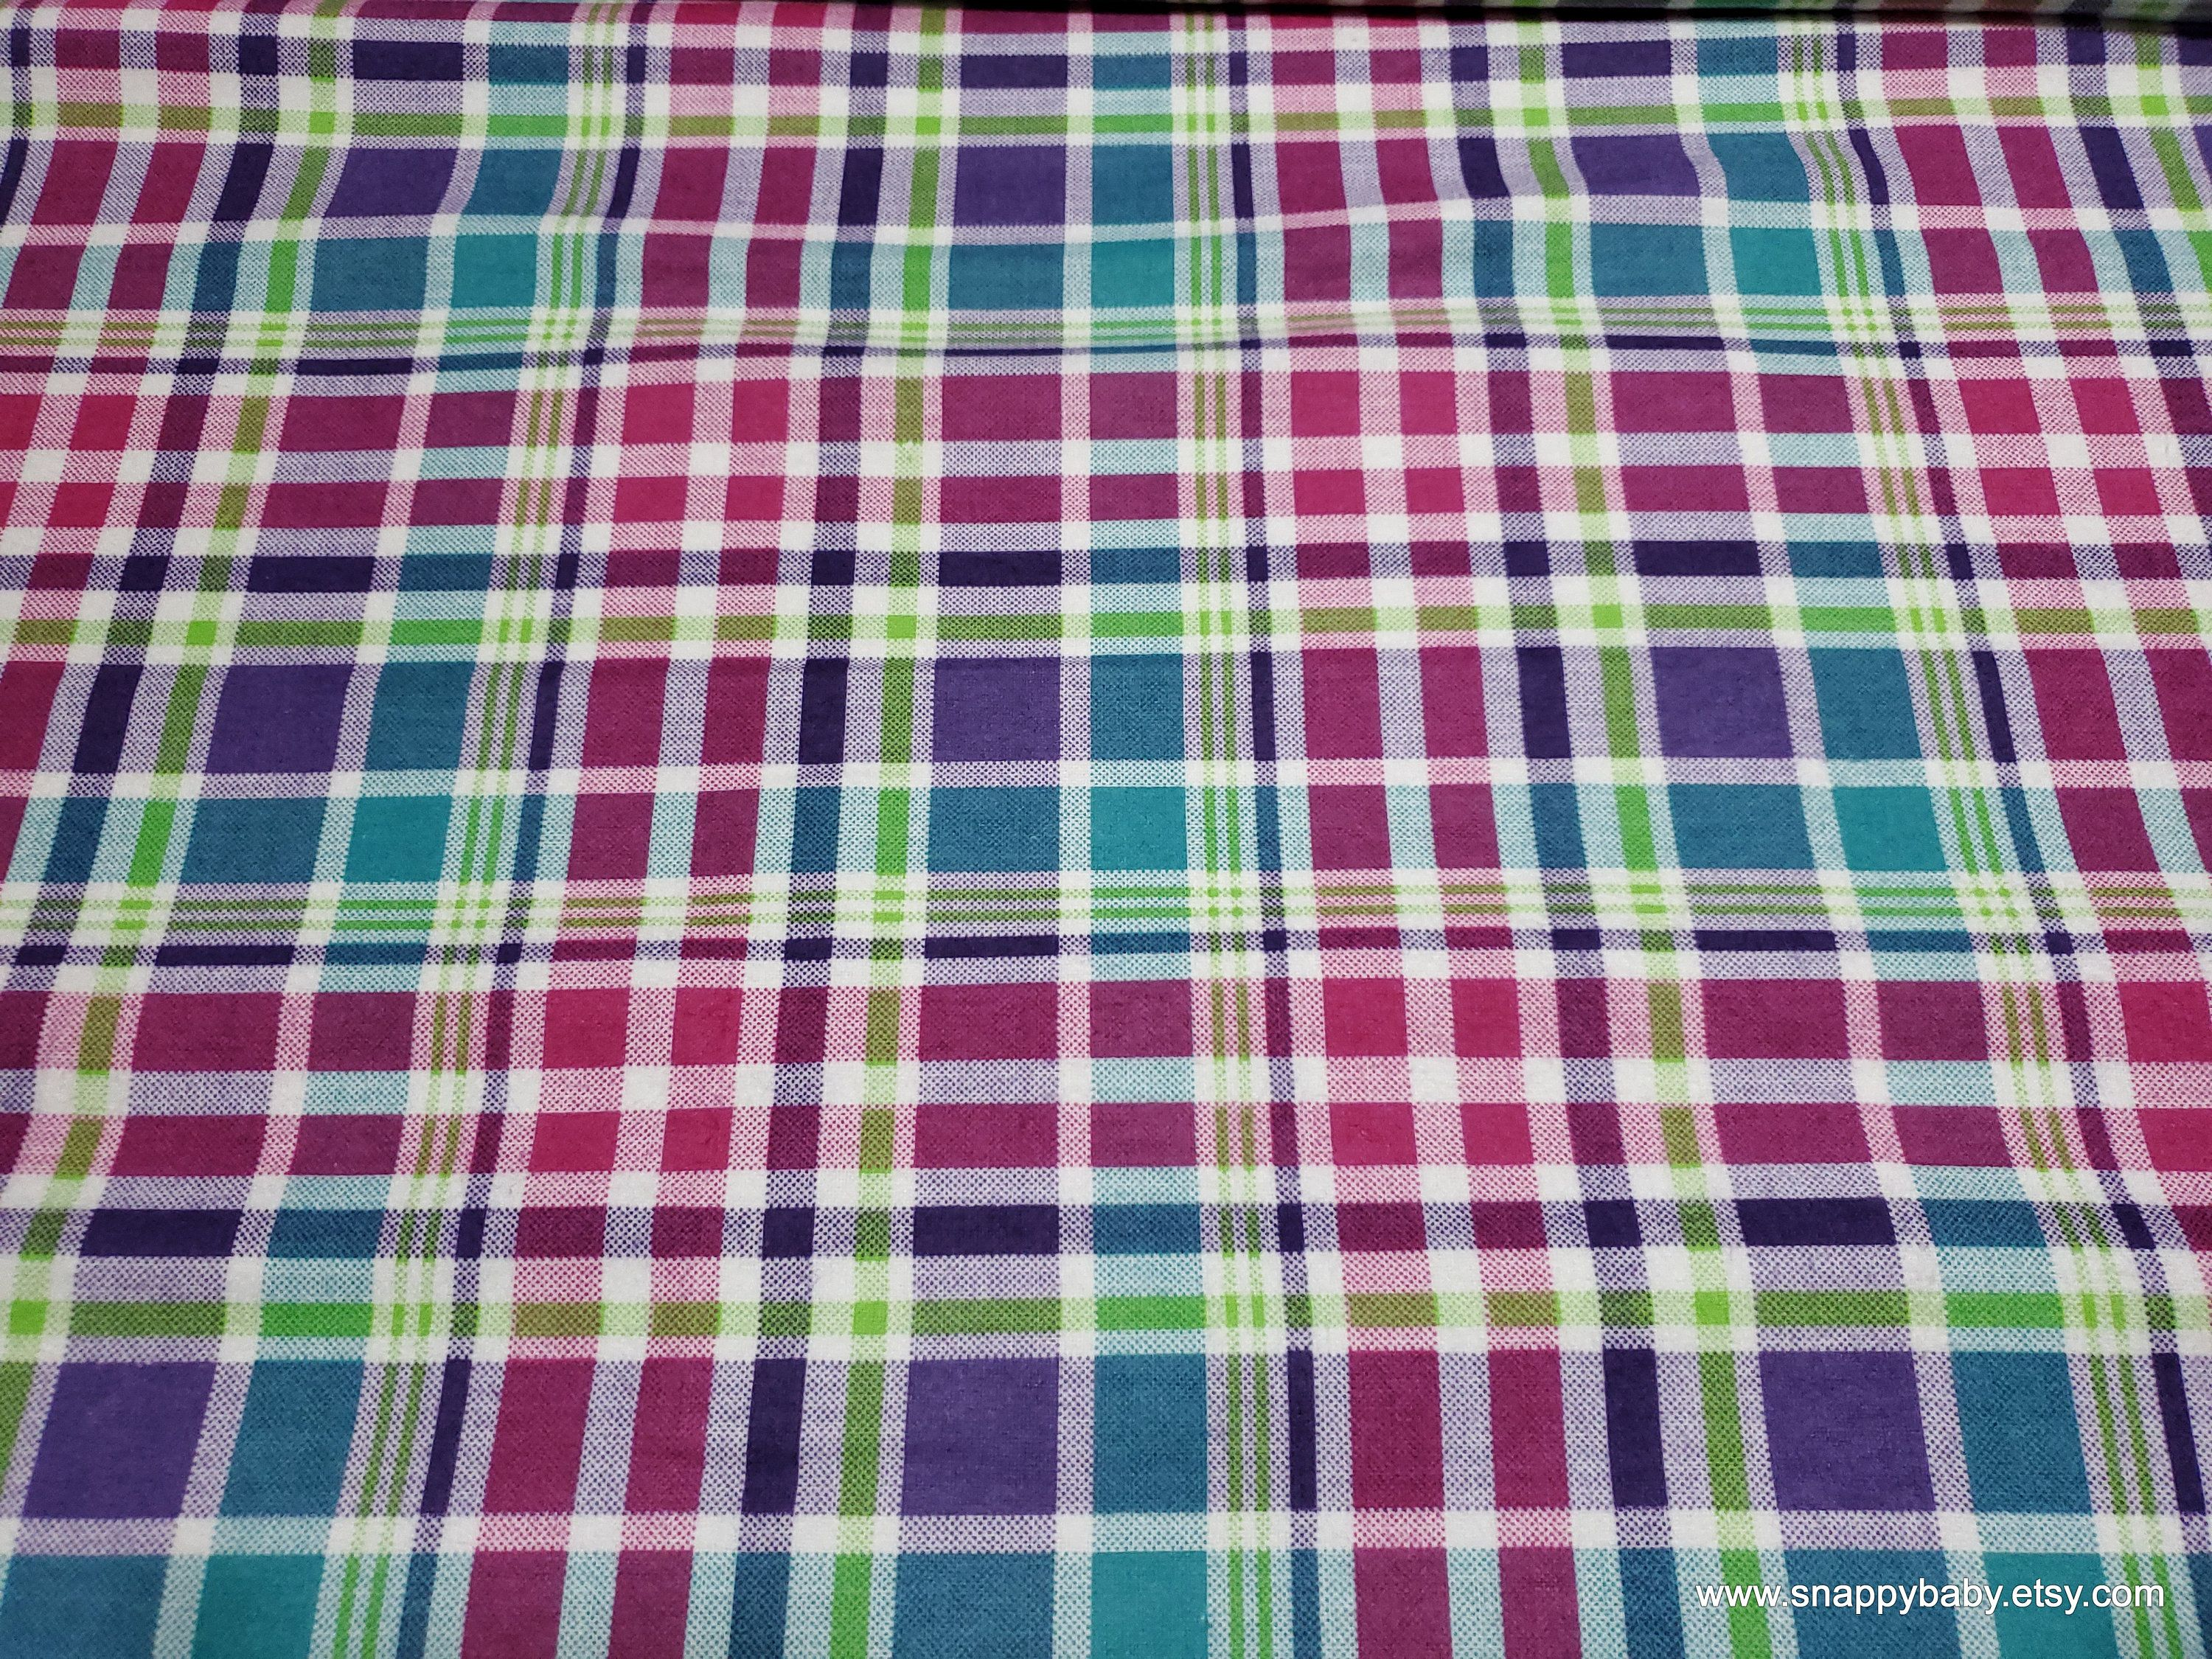 Flannel Fabric Bright Med Plaid By The Yard 100 Cotton Flannel In 2020 Flannel Fabric Fabric Cotton Flannel